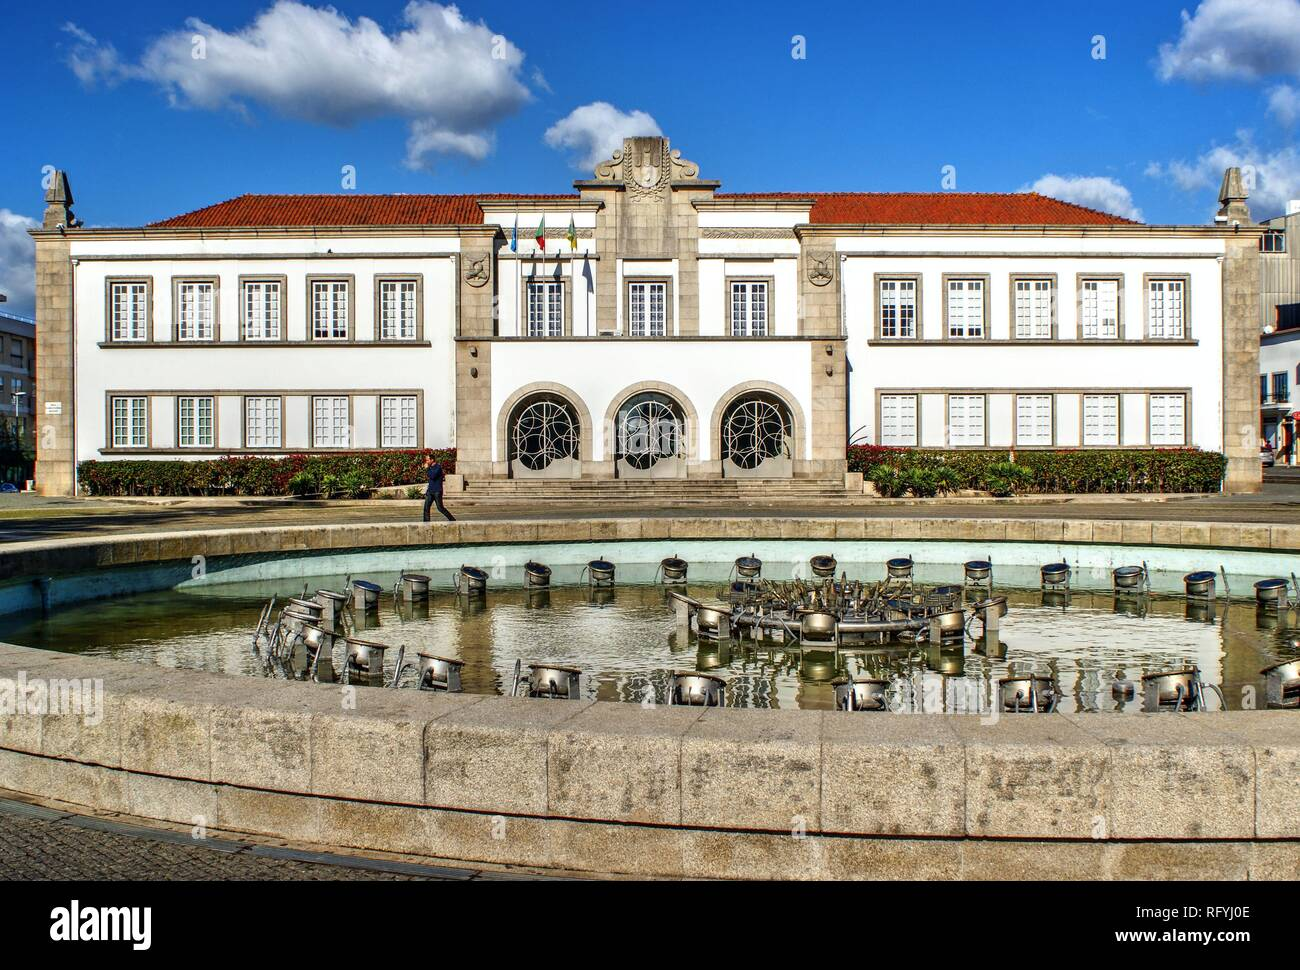 City Hall of Espinho, Portugal - Stock Image